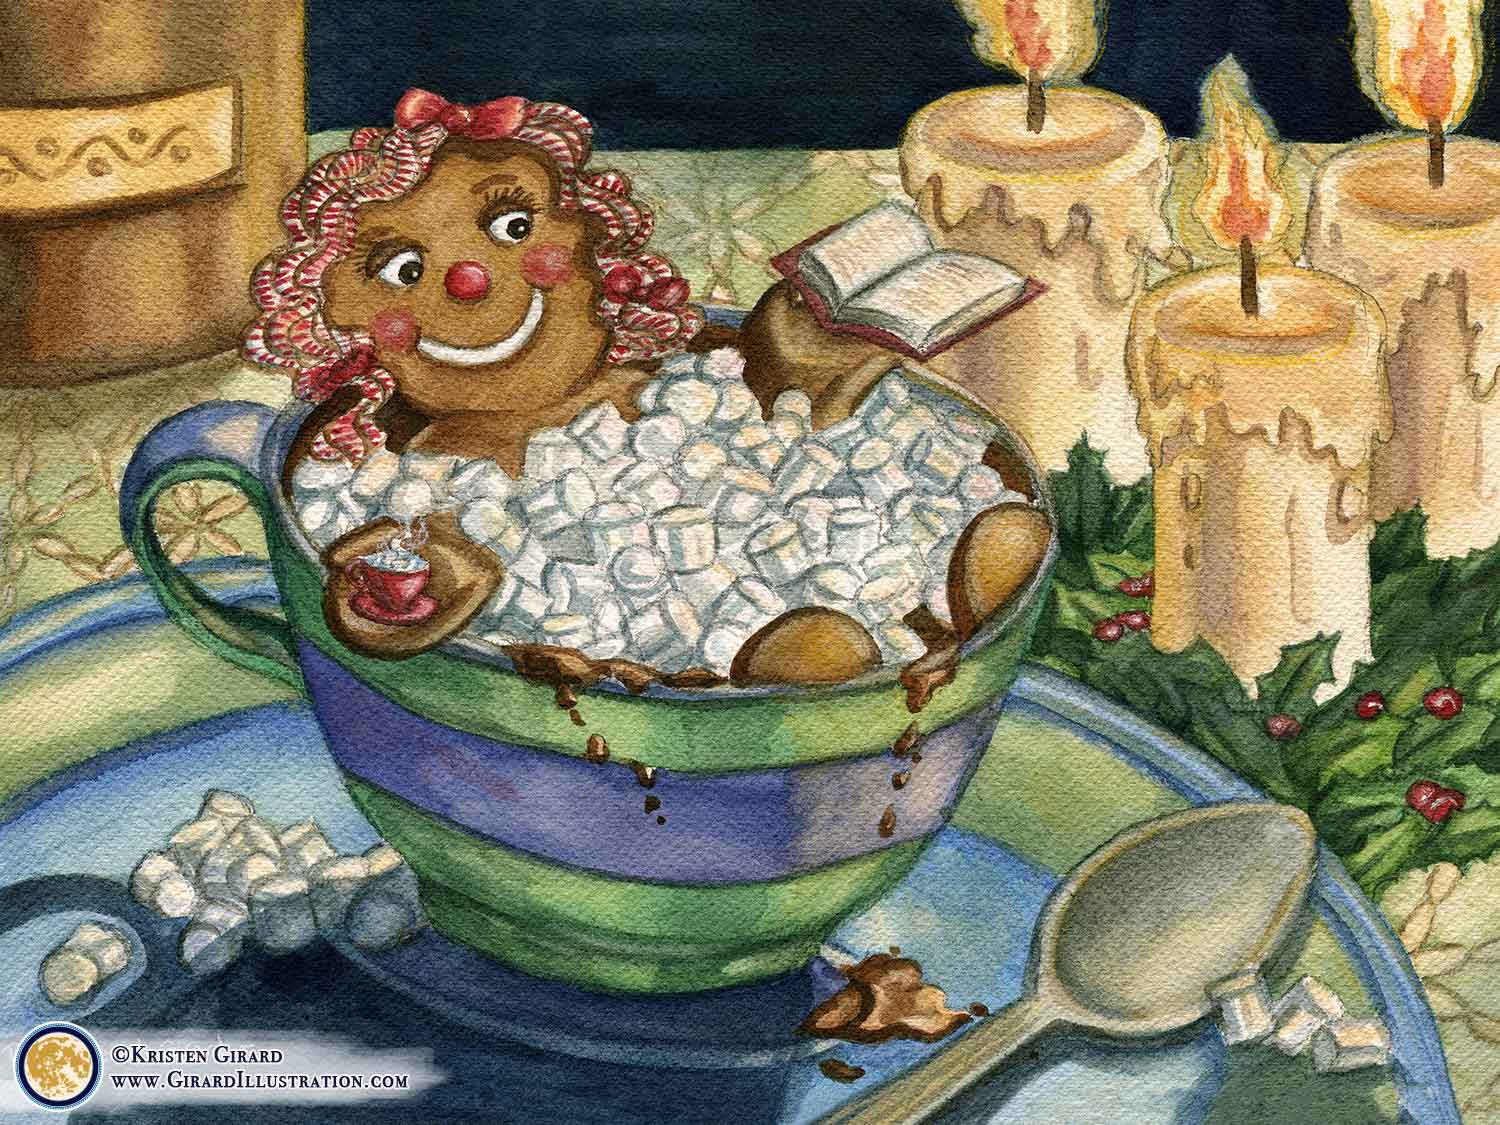 A gingerbread cookie girl decided it was time to take a night off.  This funny painting is of a gingerbread girl taking a bubble bath in a blue and green cup of hot chocolate with marshmallows while she reads a book and enjoys a hot beverage. Candles nearby make for cozy light nearby. Bubble Bath by © Kristen Girard of Girard Illustration.